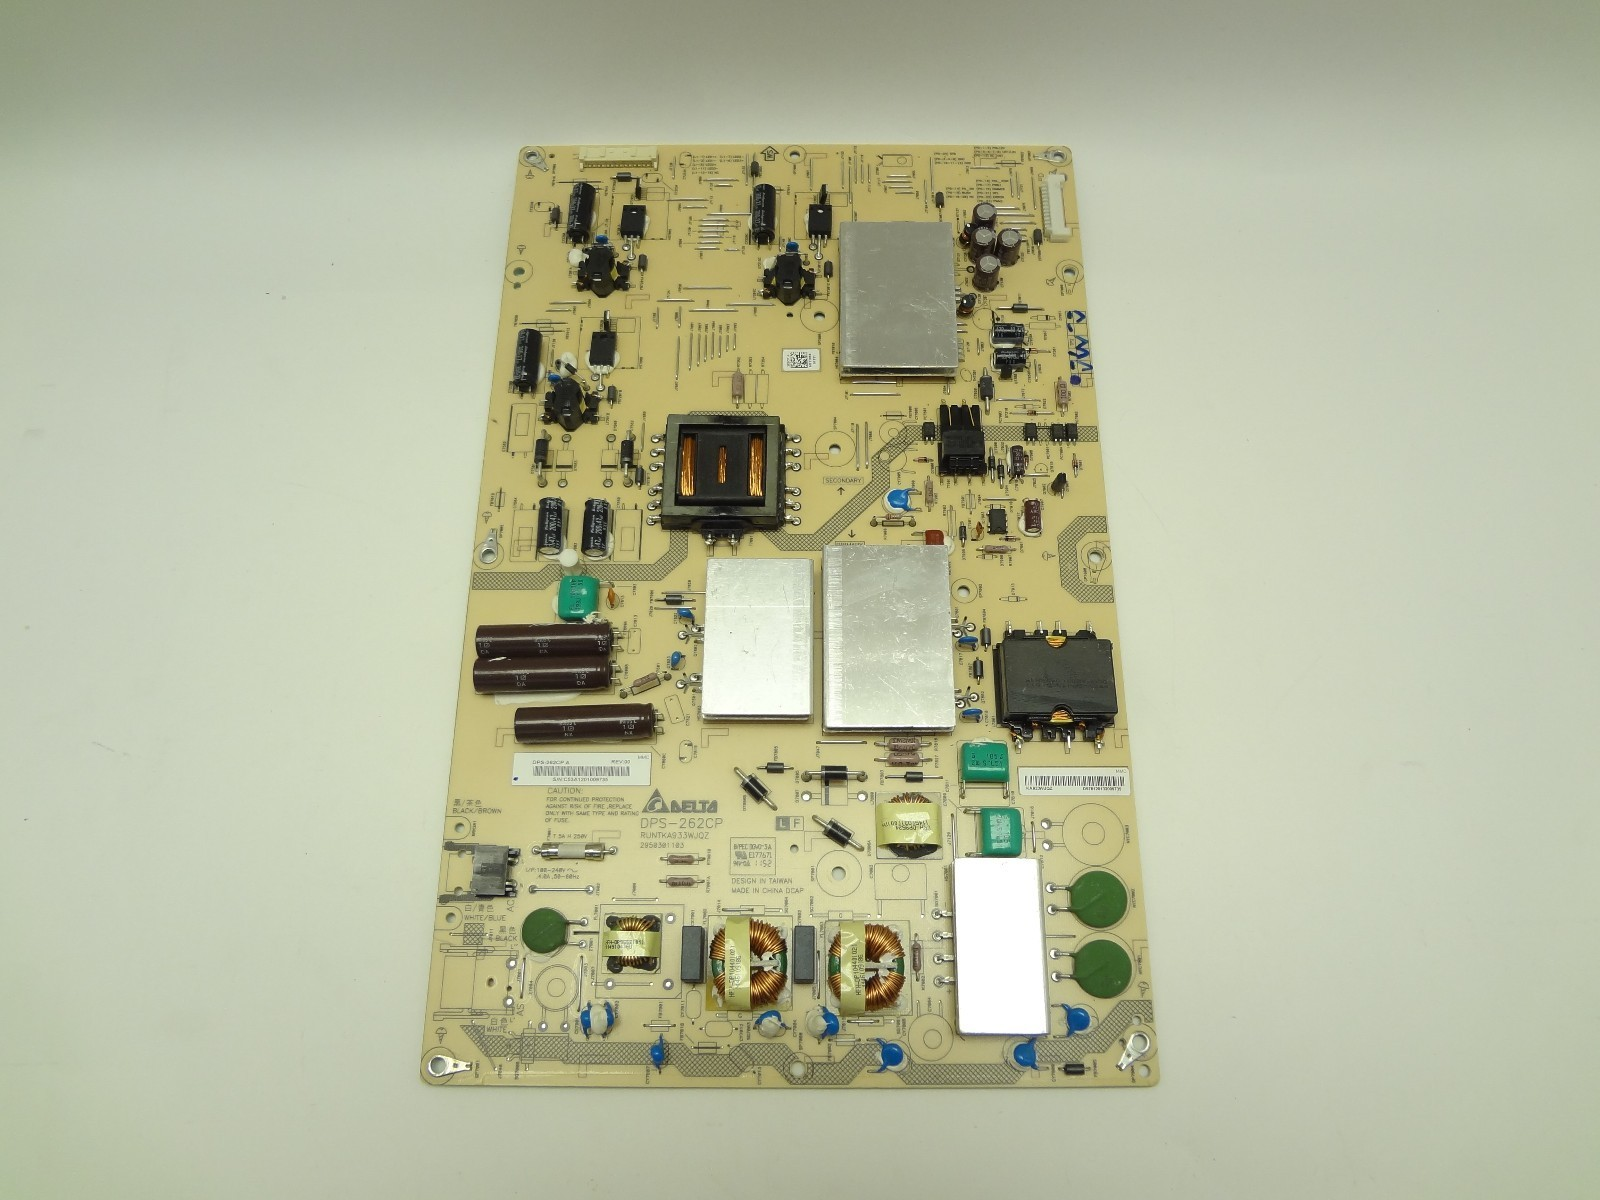 "Sharp 70"" LC-70LE640U DPS-262CP LCD LED Power Supply Board RUNTK"